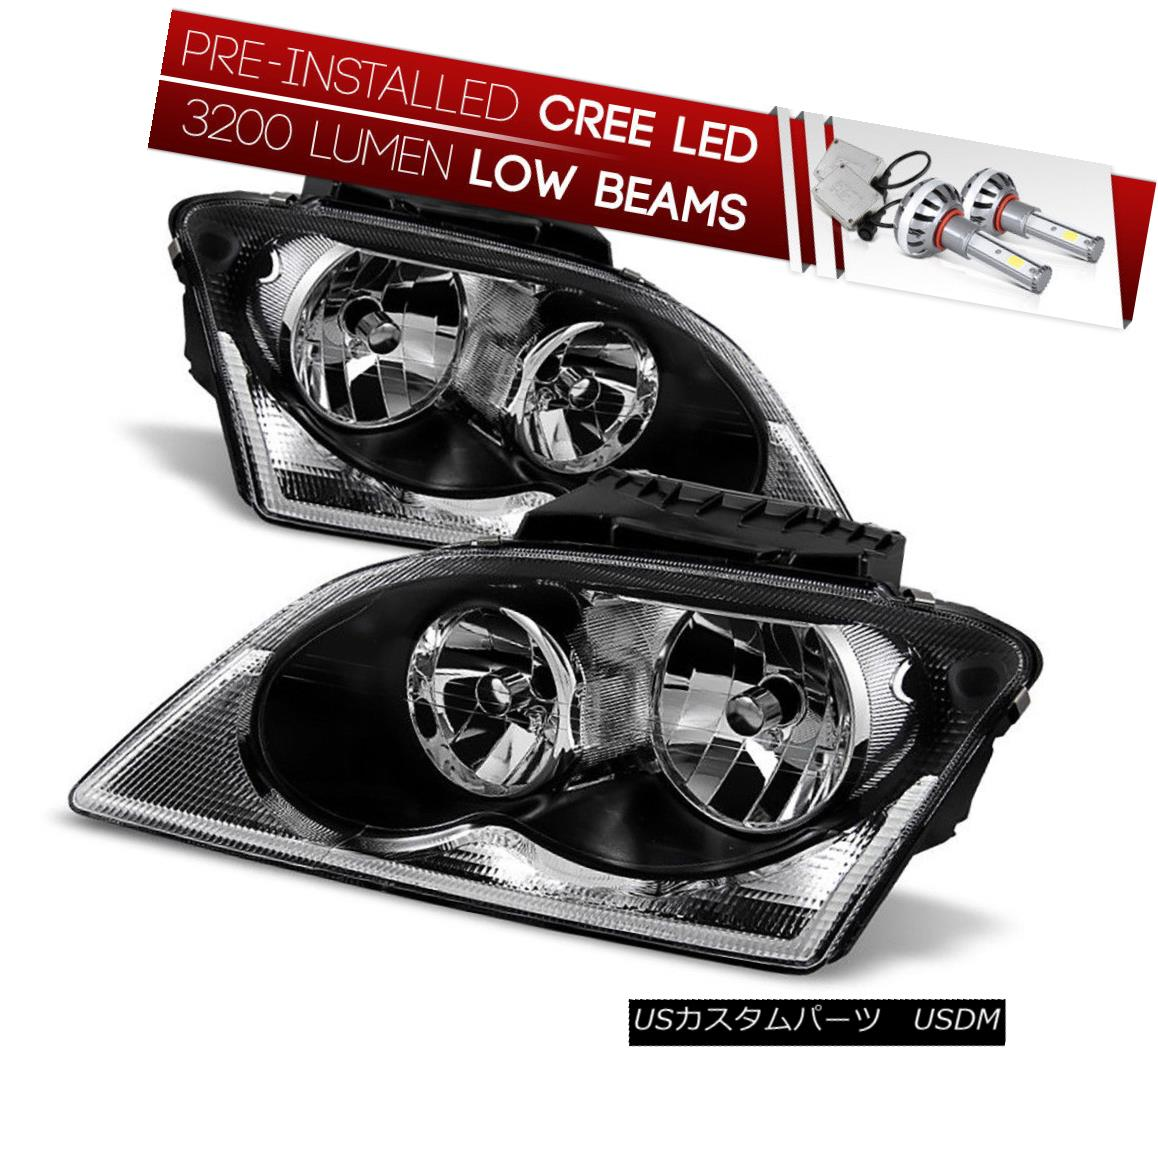 ヘッドライト [CREE LED Bulb Installed] 04-06 Chrysler Pacifica Black Replacement Headlight [CREE LED Bulb Installed] 04-06クライスラーパシフィカブラック交換ヘッドライト